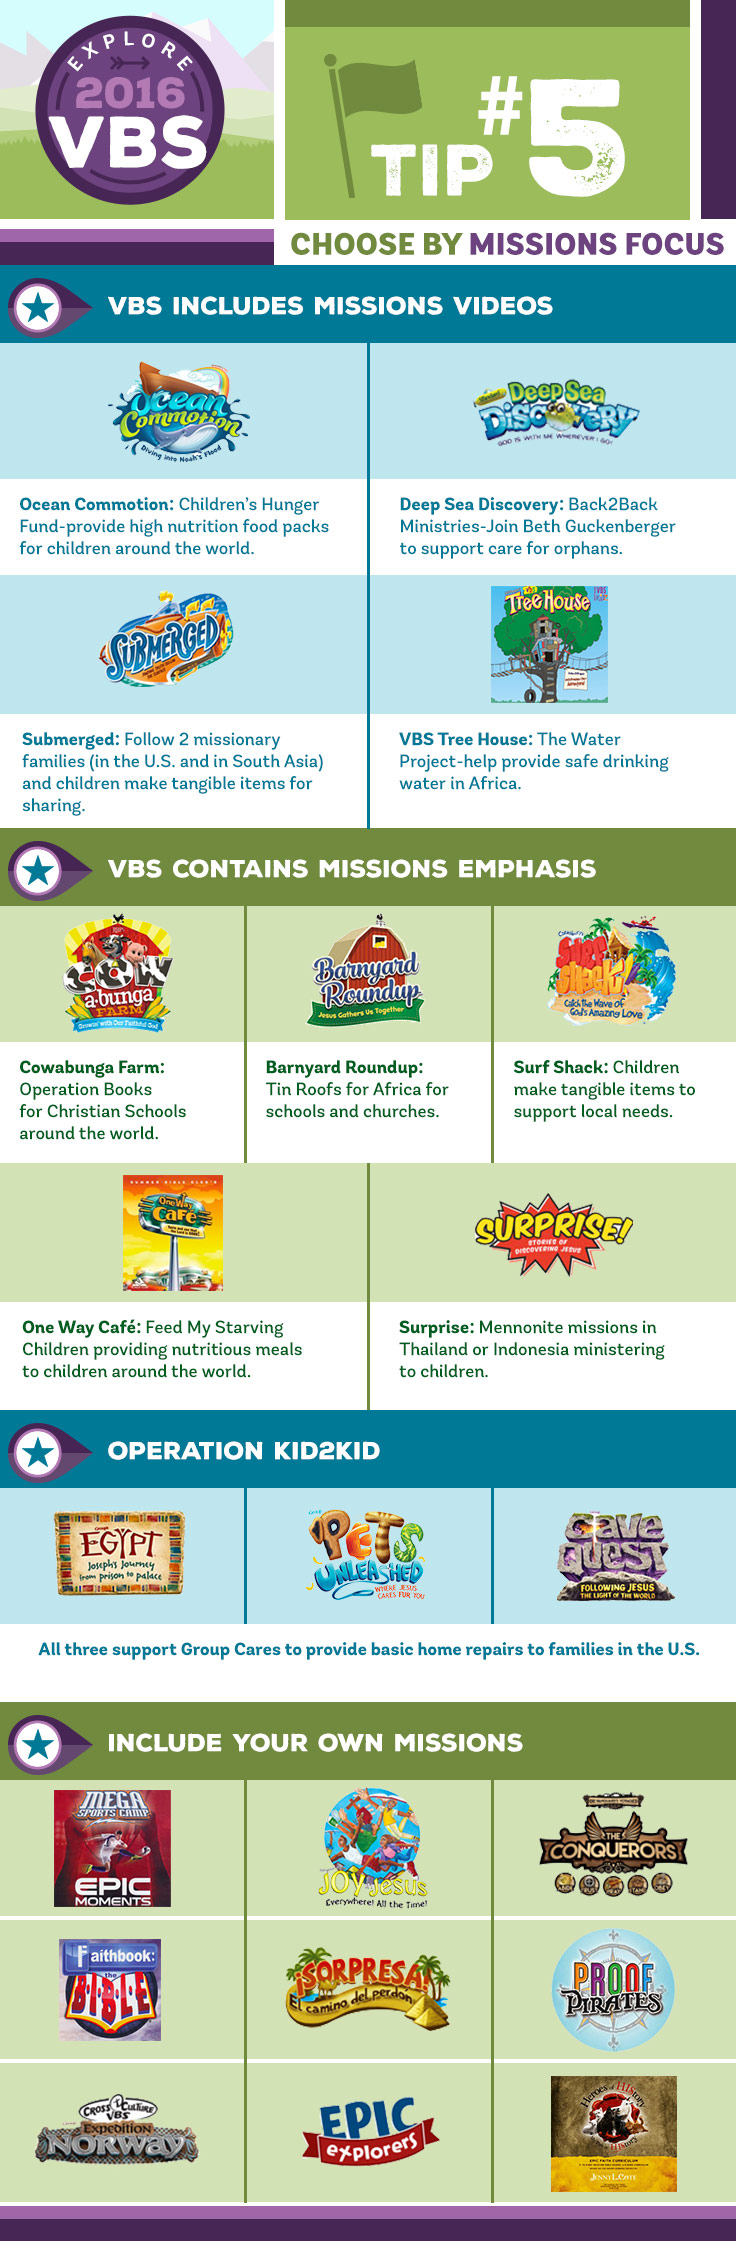 VBS Tip#5: Choose by Missions Focu